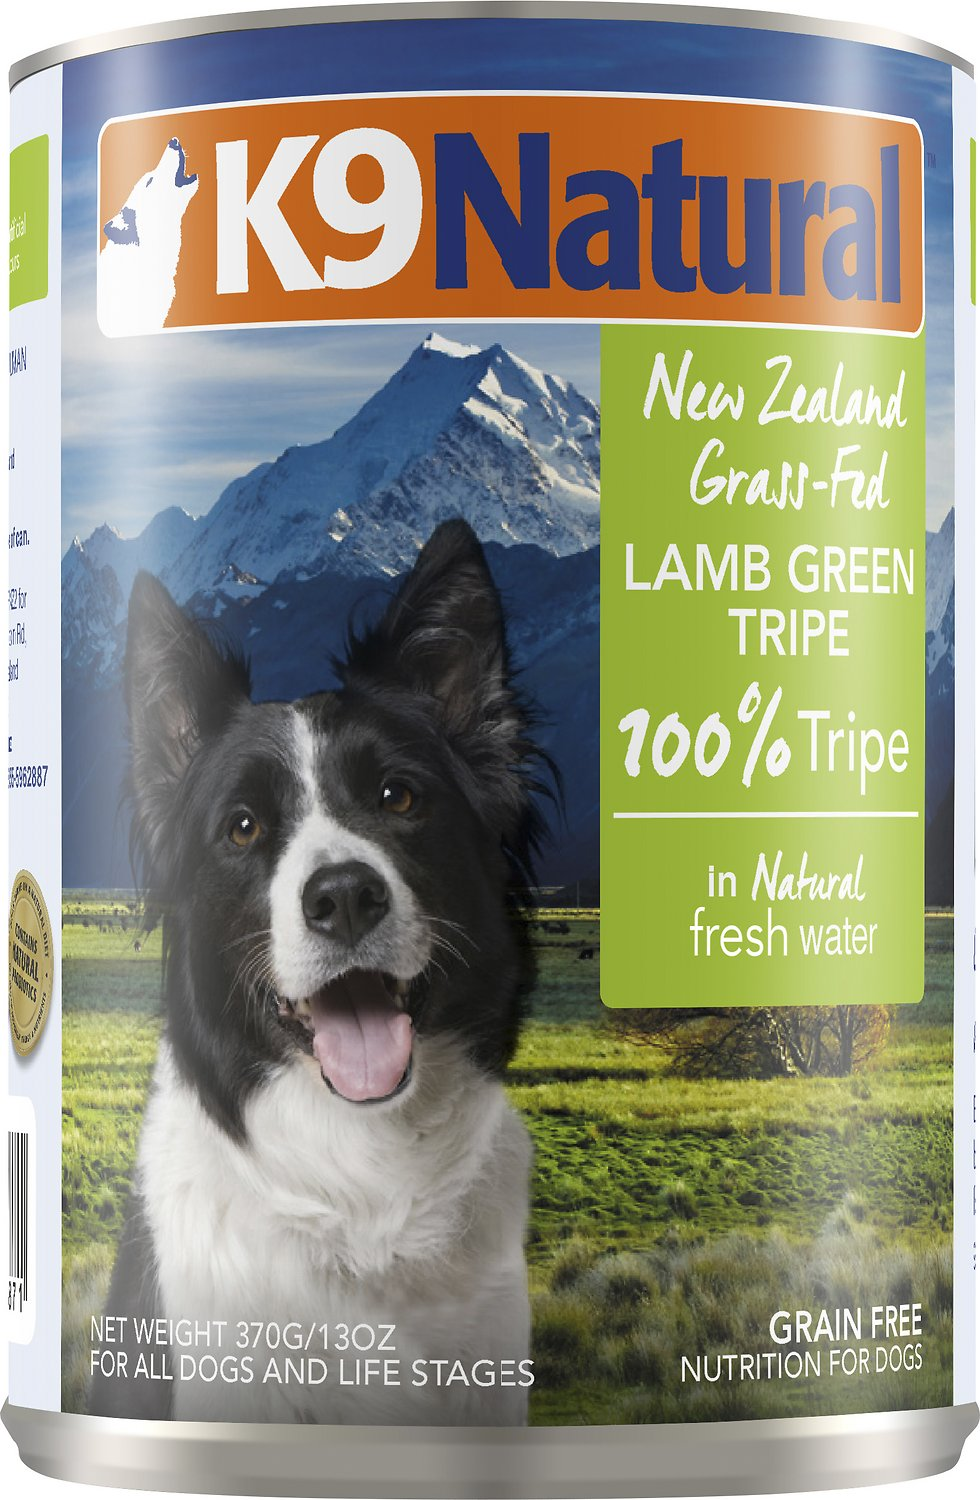 K9 Natural 100% Lamb Green Tripe Grain-Free Canned Dog Food, 13-oz Size: 13-oz